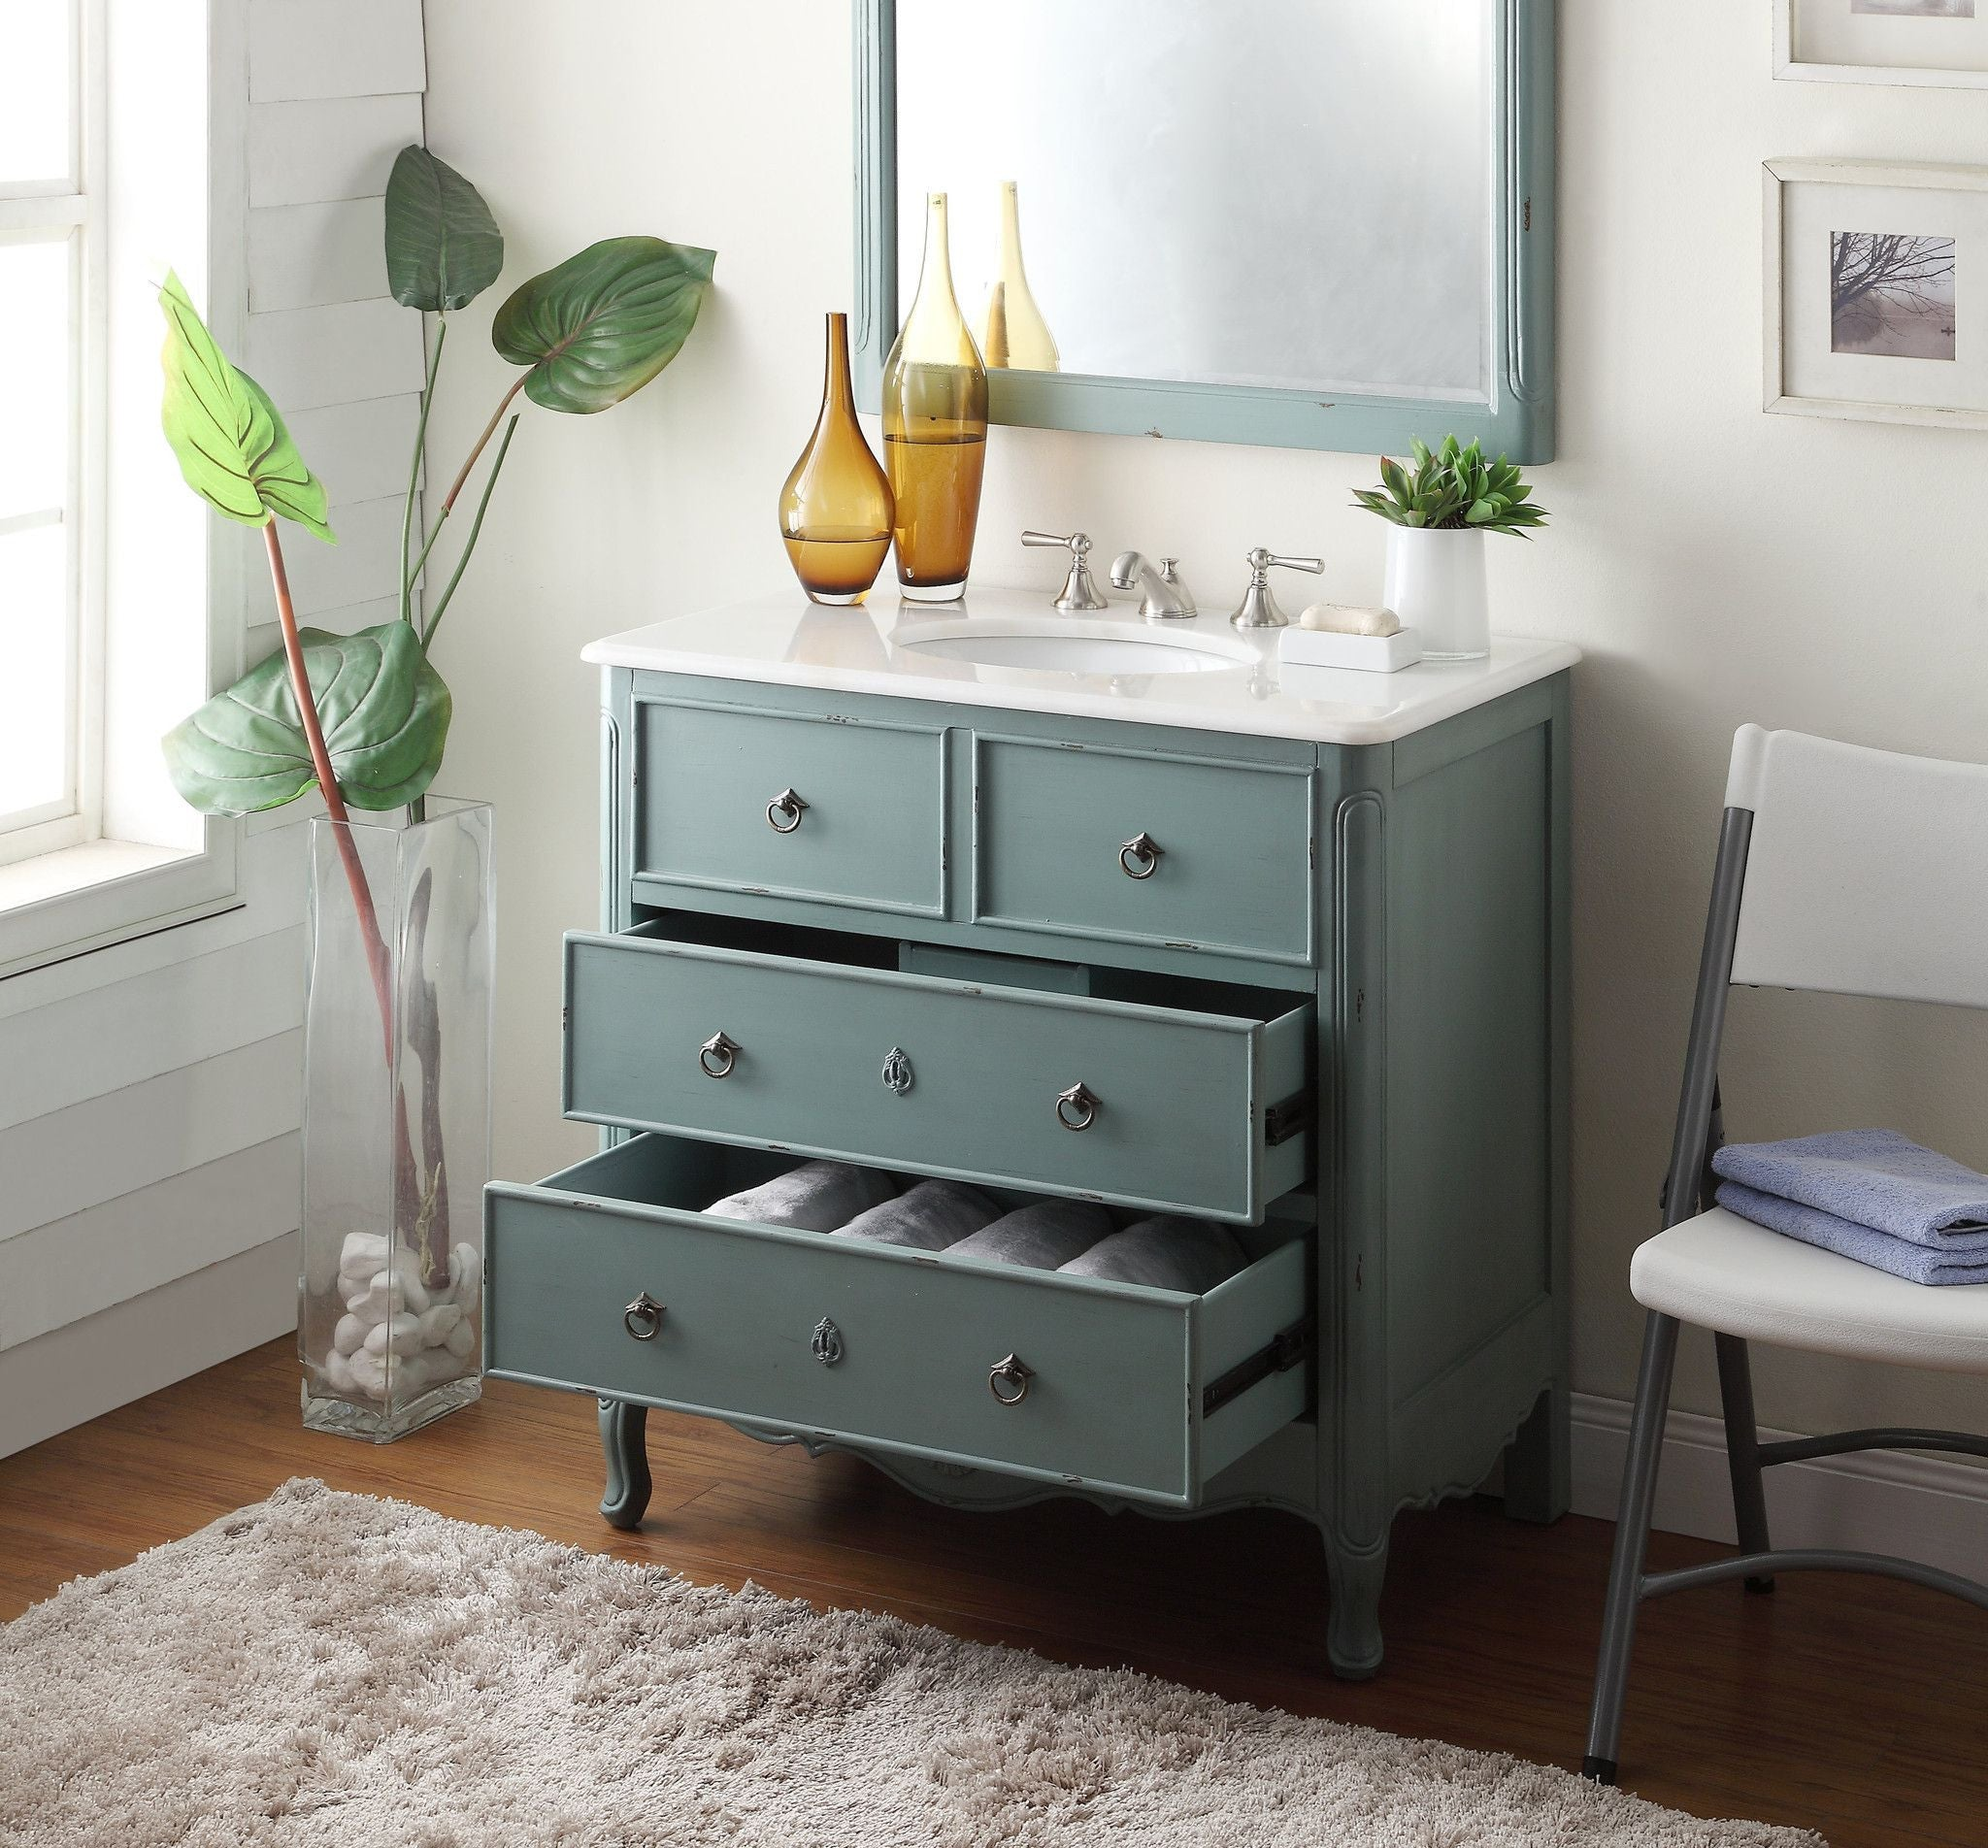 espresso in vanity w argonne marble vanities bathroom d p with brown basin and top sink collection decorators bath glass x tops home